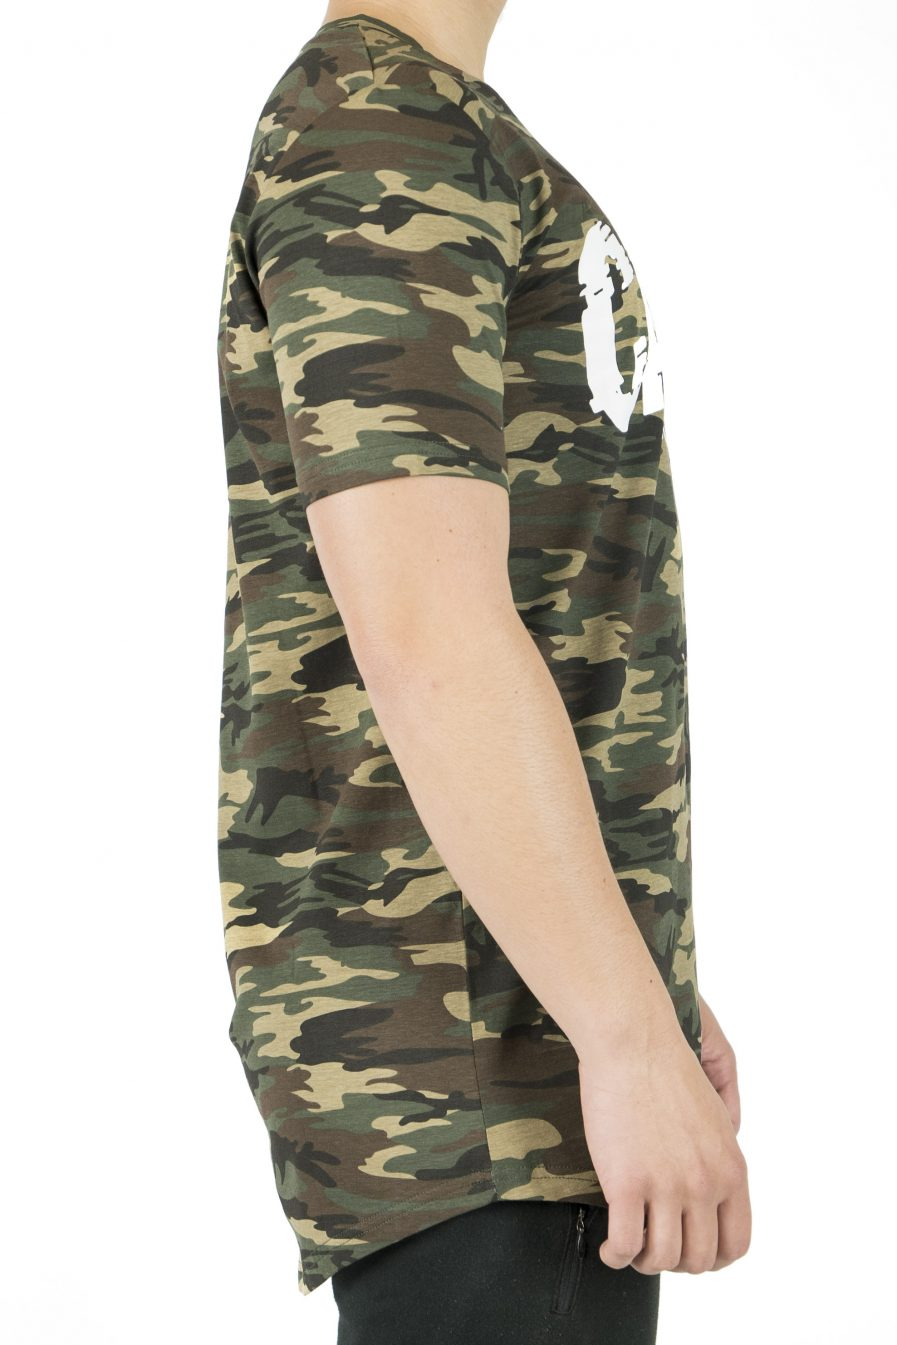 'Not Given' T-Shirt - Camo - CartelStoreOfficial